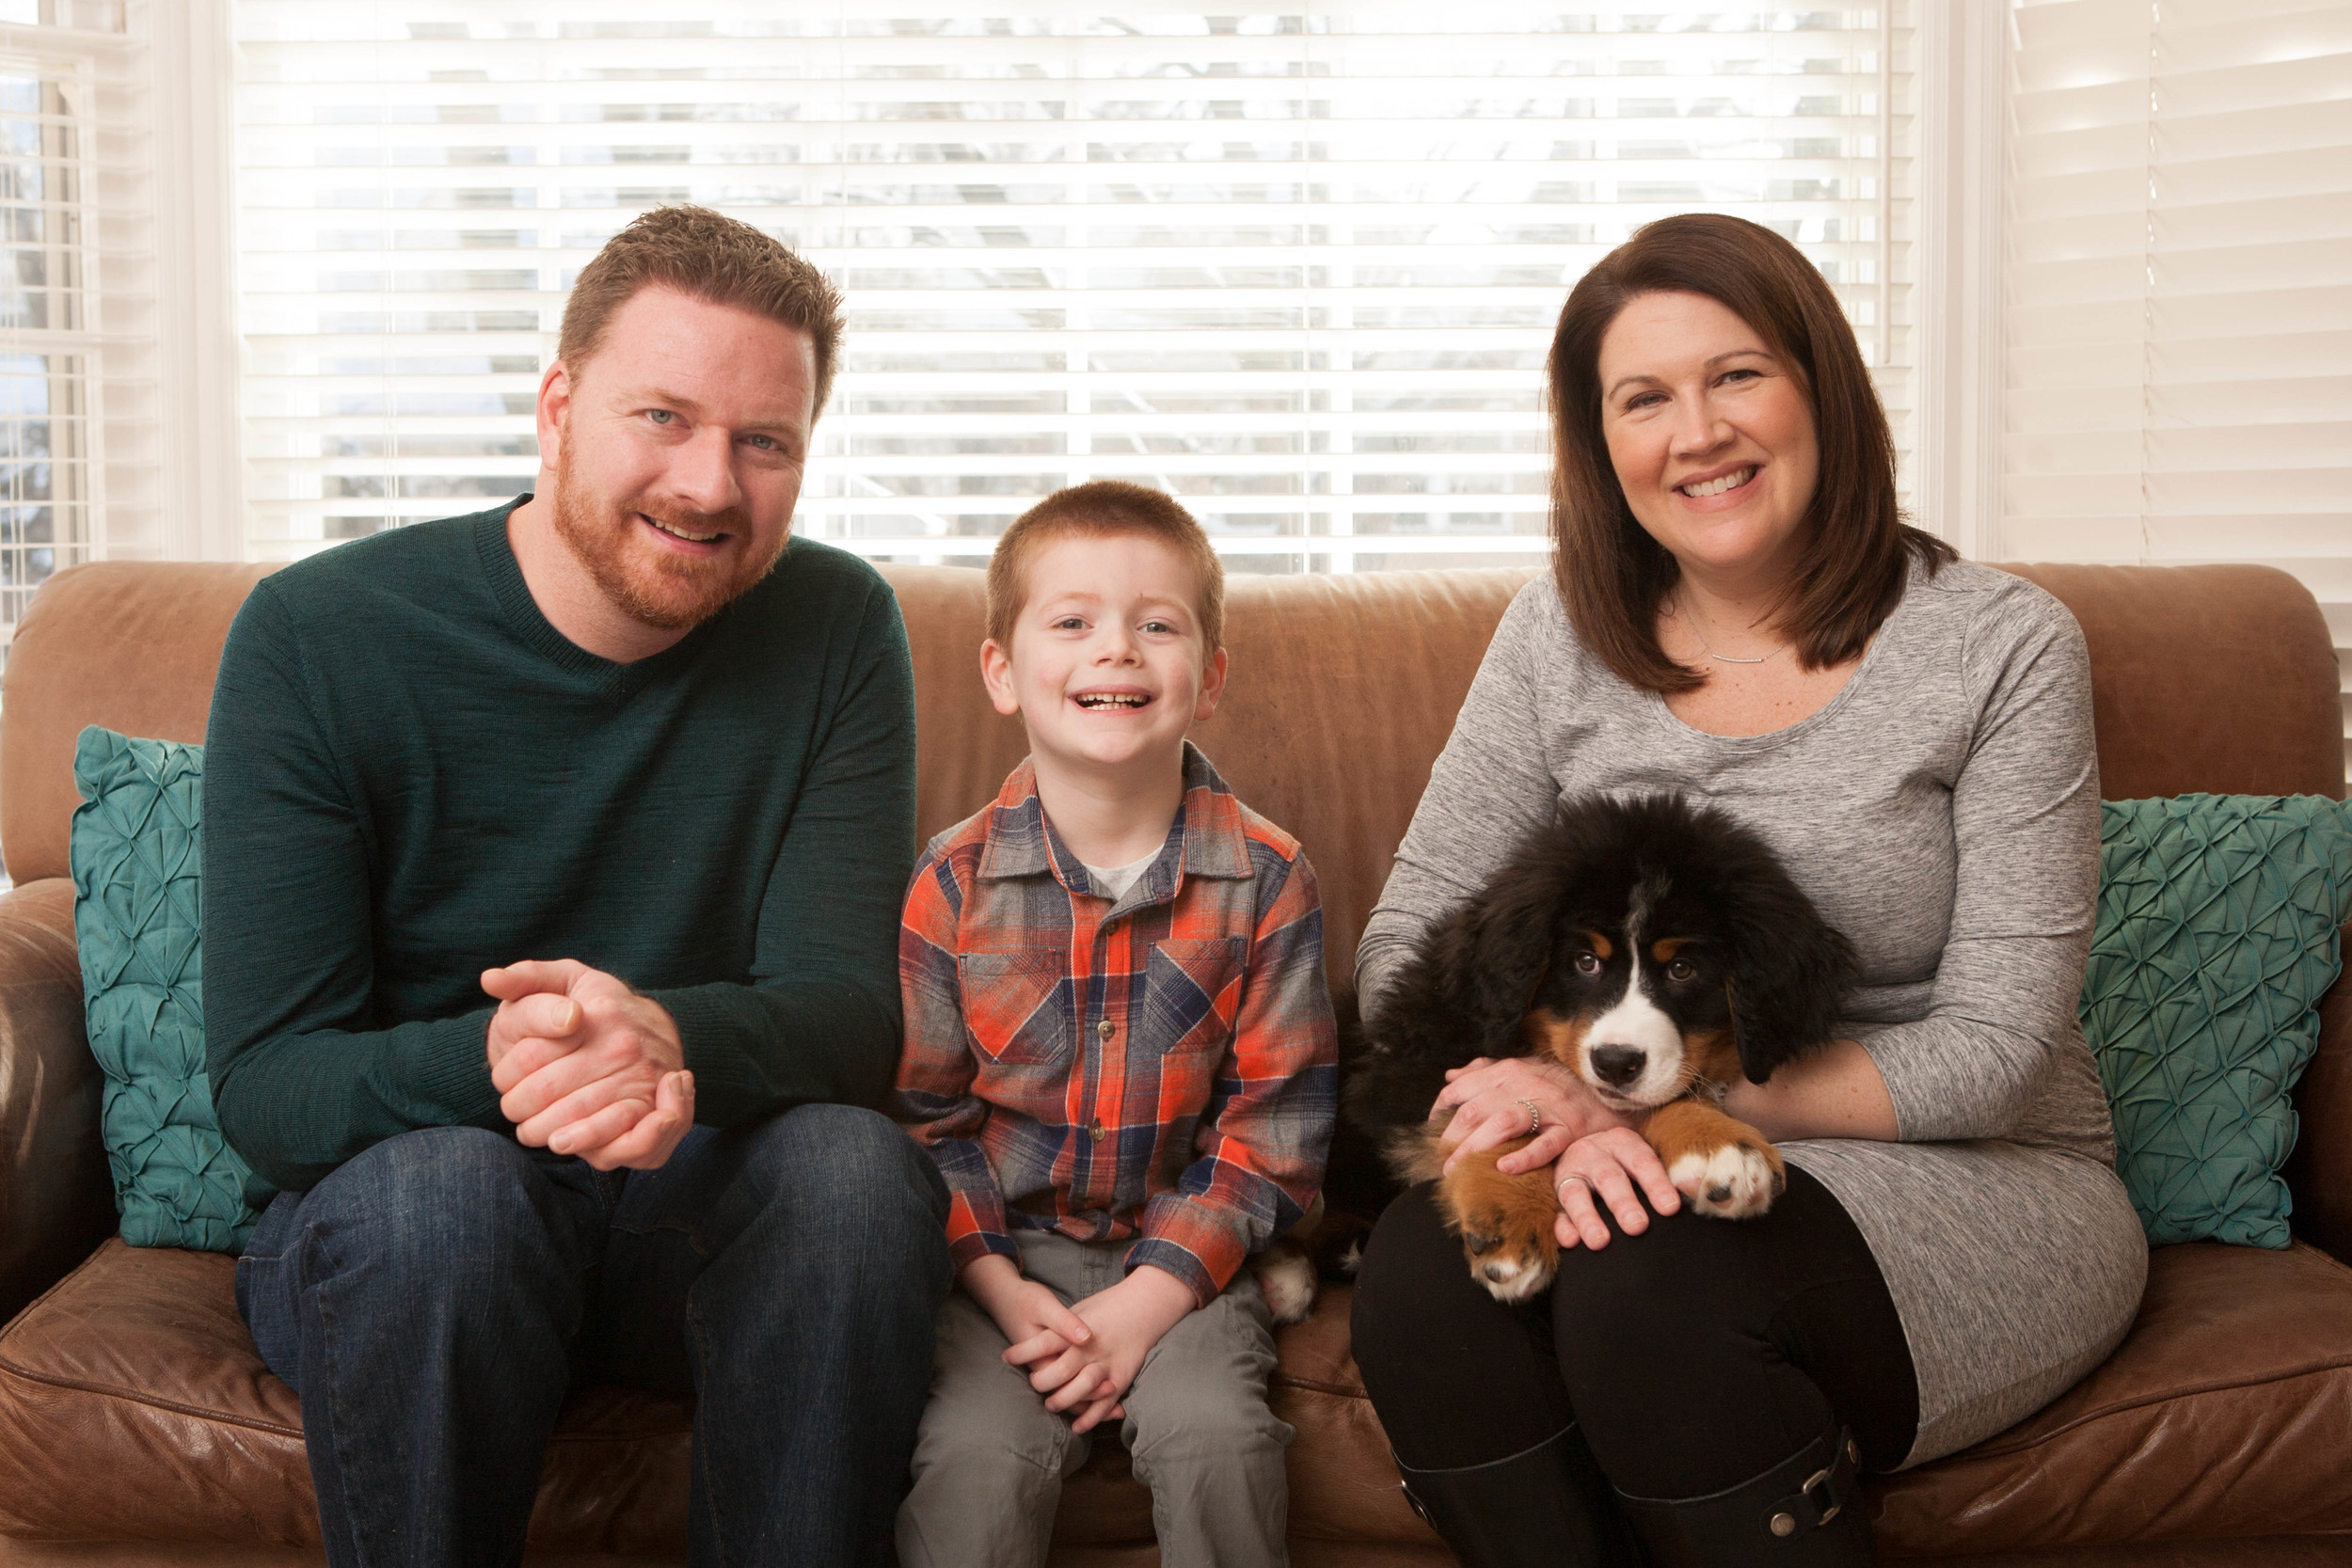 Chicago Kids and Family Photographer